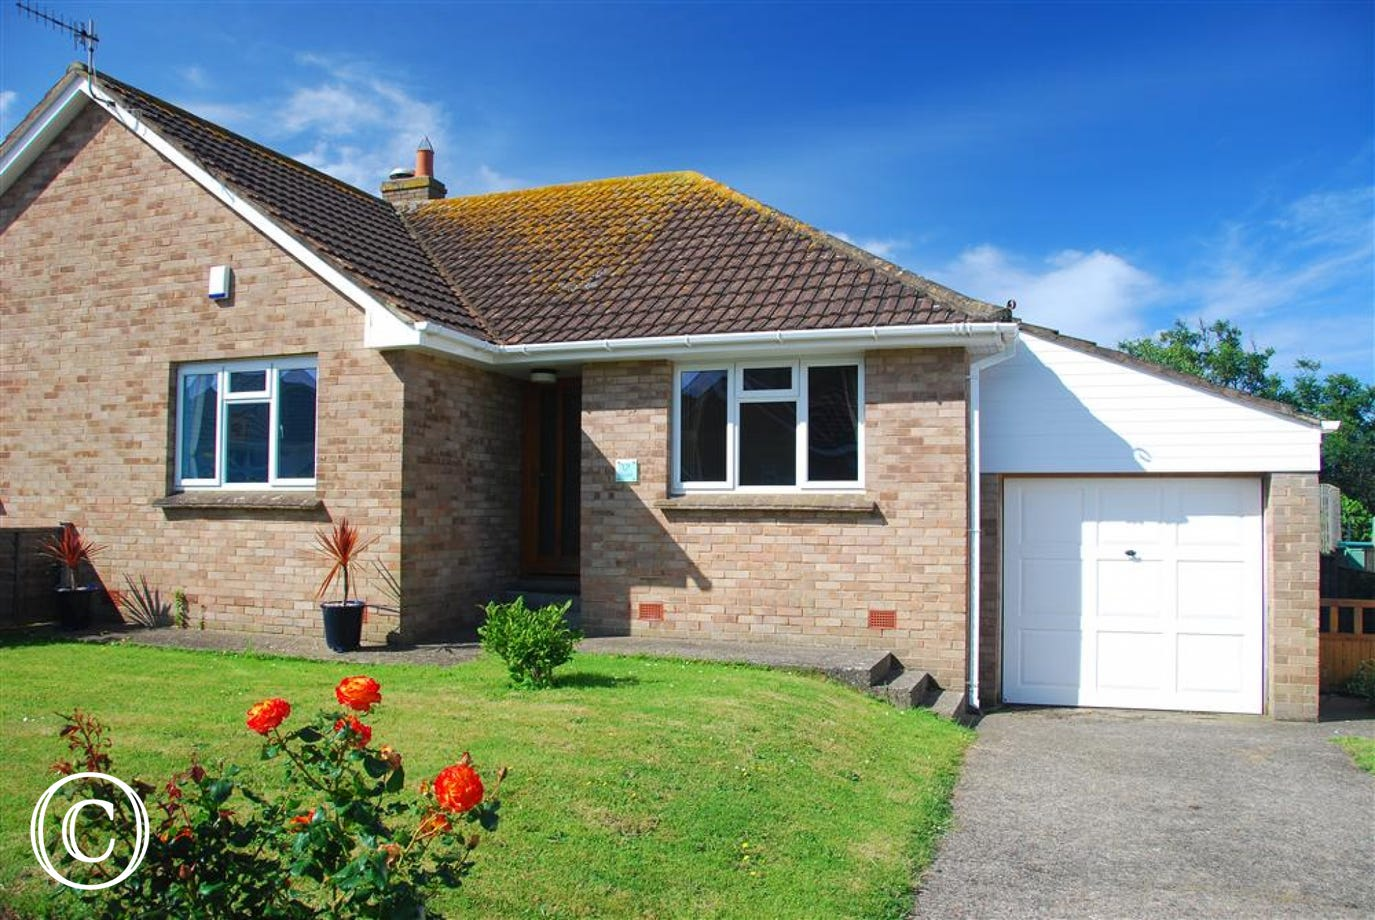 Swell is a stylish semi-detached home in the heart of Croyde